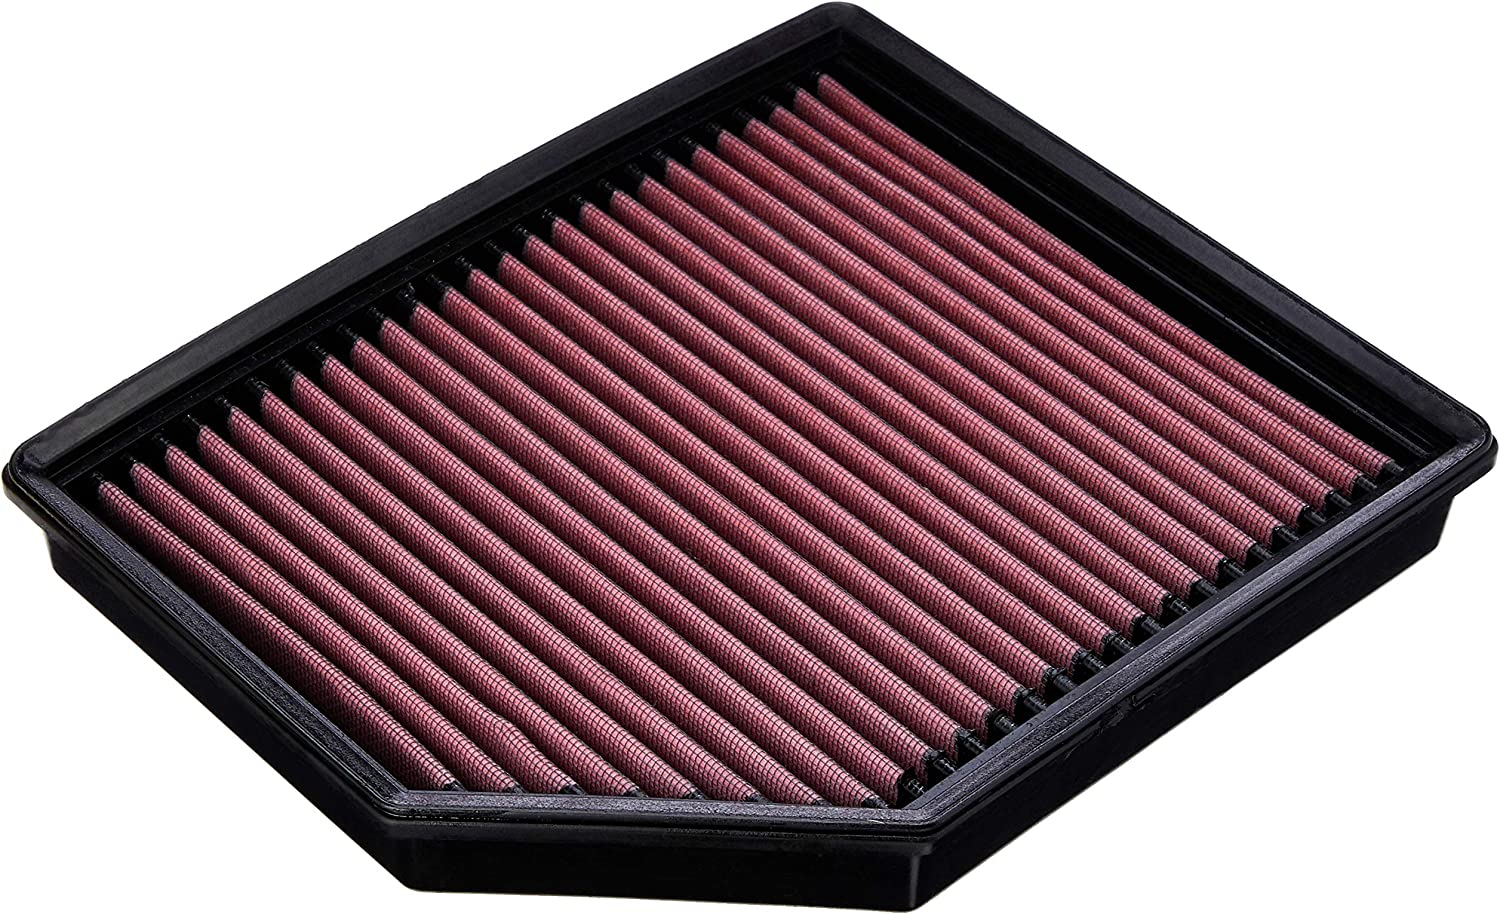 K&N Engine Air Filter: High Performance, Premium, Washable, Replacement Filter: 2016-2019 Volvo (S90, S90 II, V60, V60 II, V90, V90 Cross Country, V90 II, XC60 , XC 60 II), 33-3065